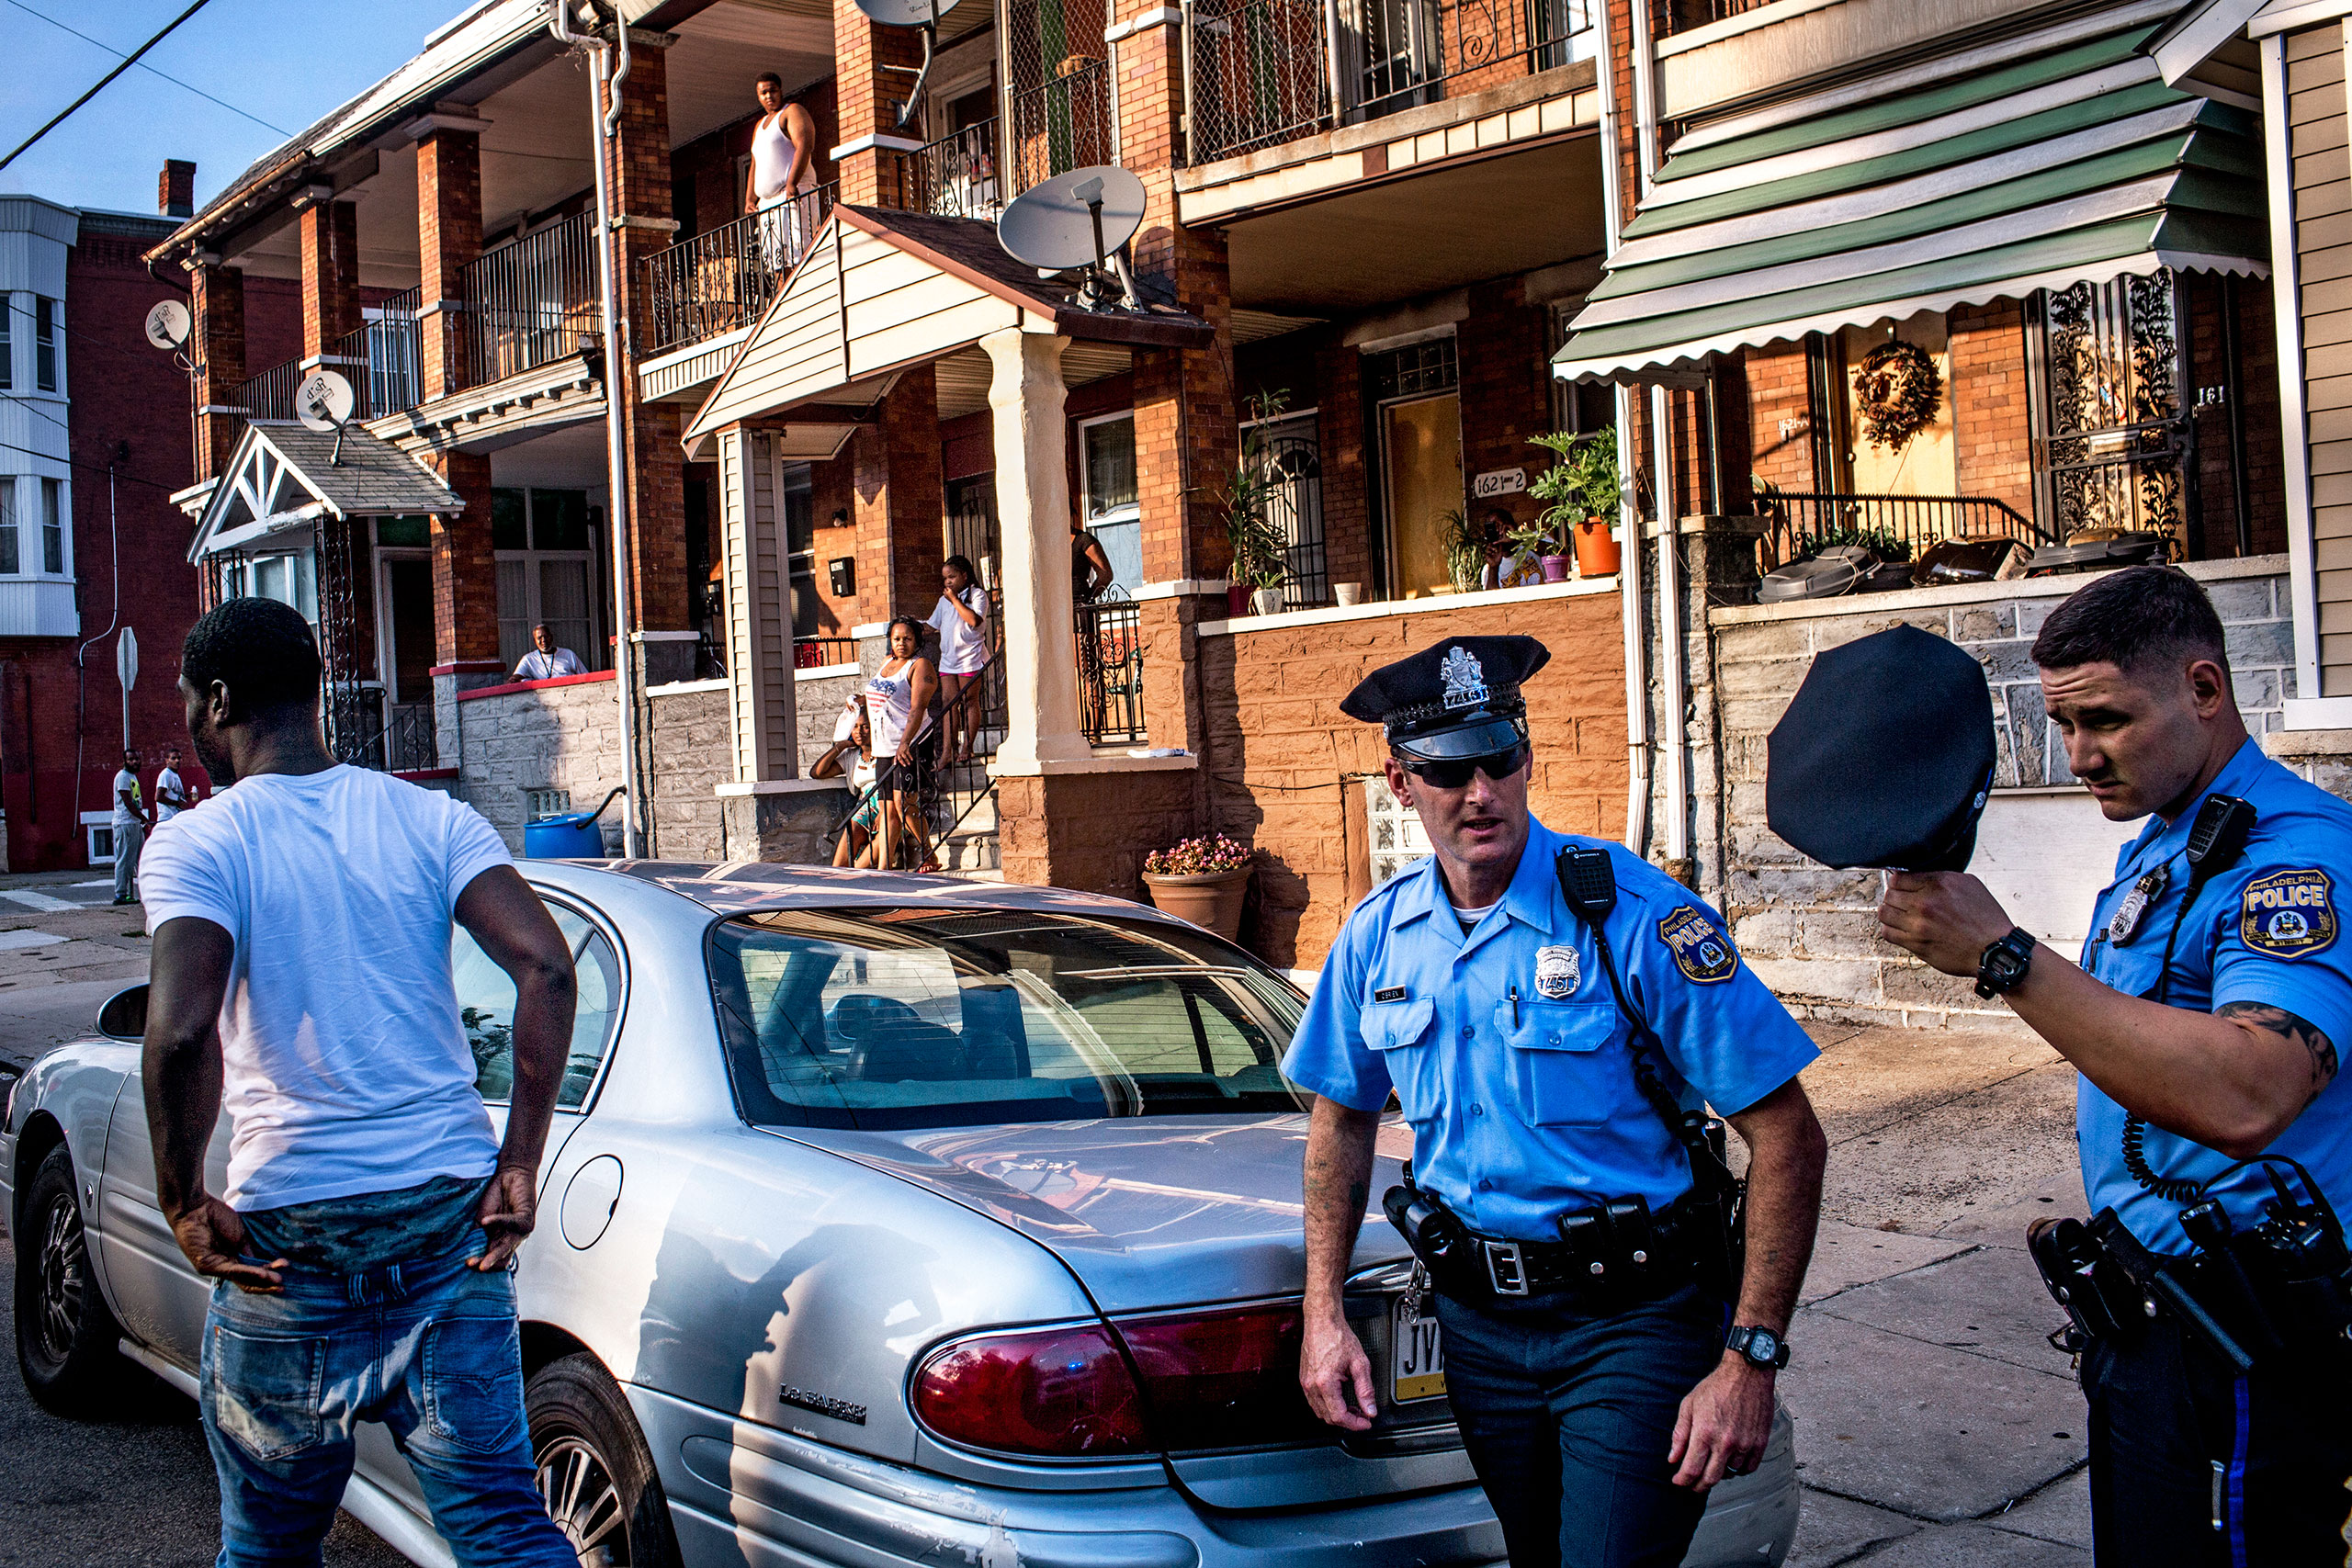 Officers Paul Watson, right, and his partner Officer Richard O'Brien make a traffic stop as neighbors look on. After the police searched his car, the man was released. July 29, 2015. Philadelphia, Pa.From  This Photographer Shows What It Means to Be a Cop Today